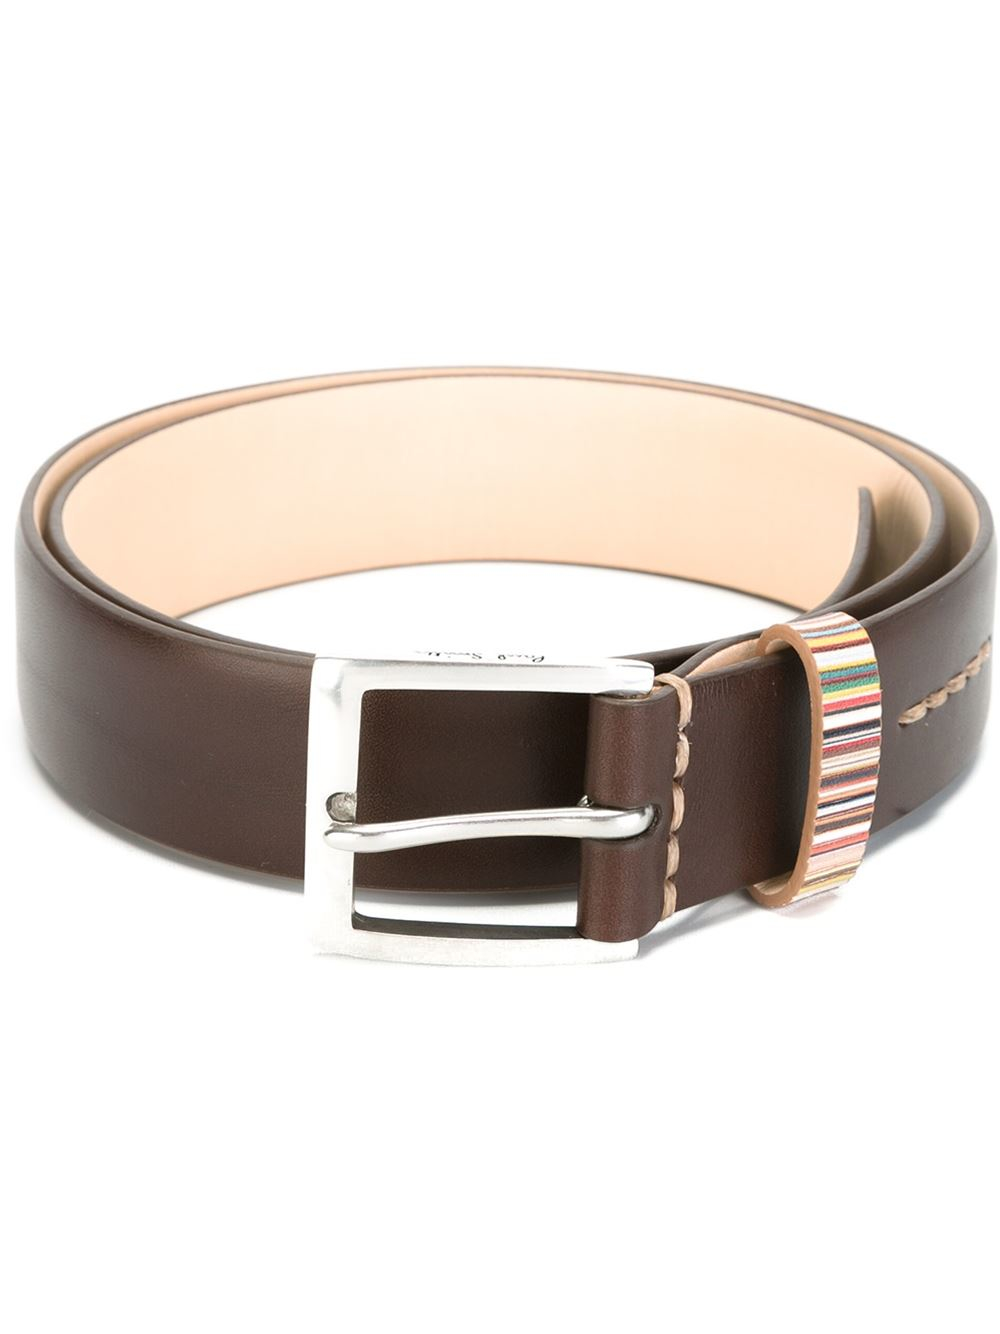 paul smith buckle belt in brown for lyst